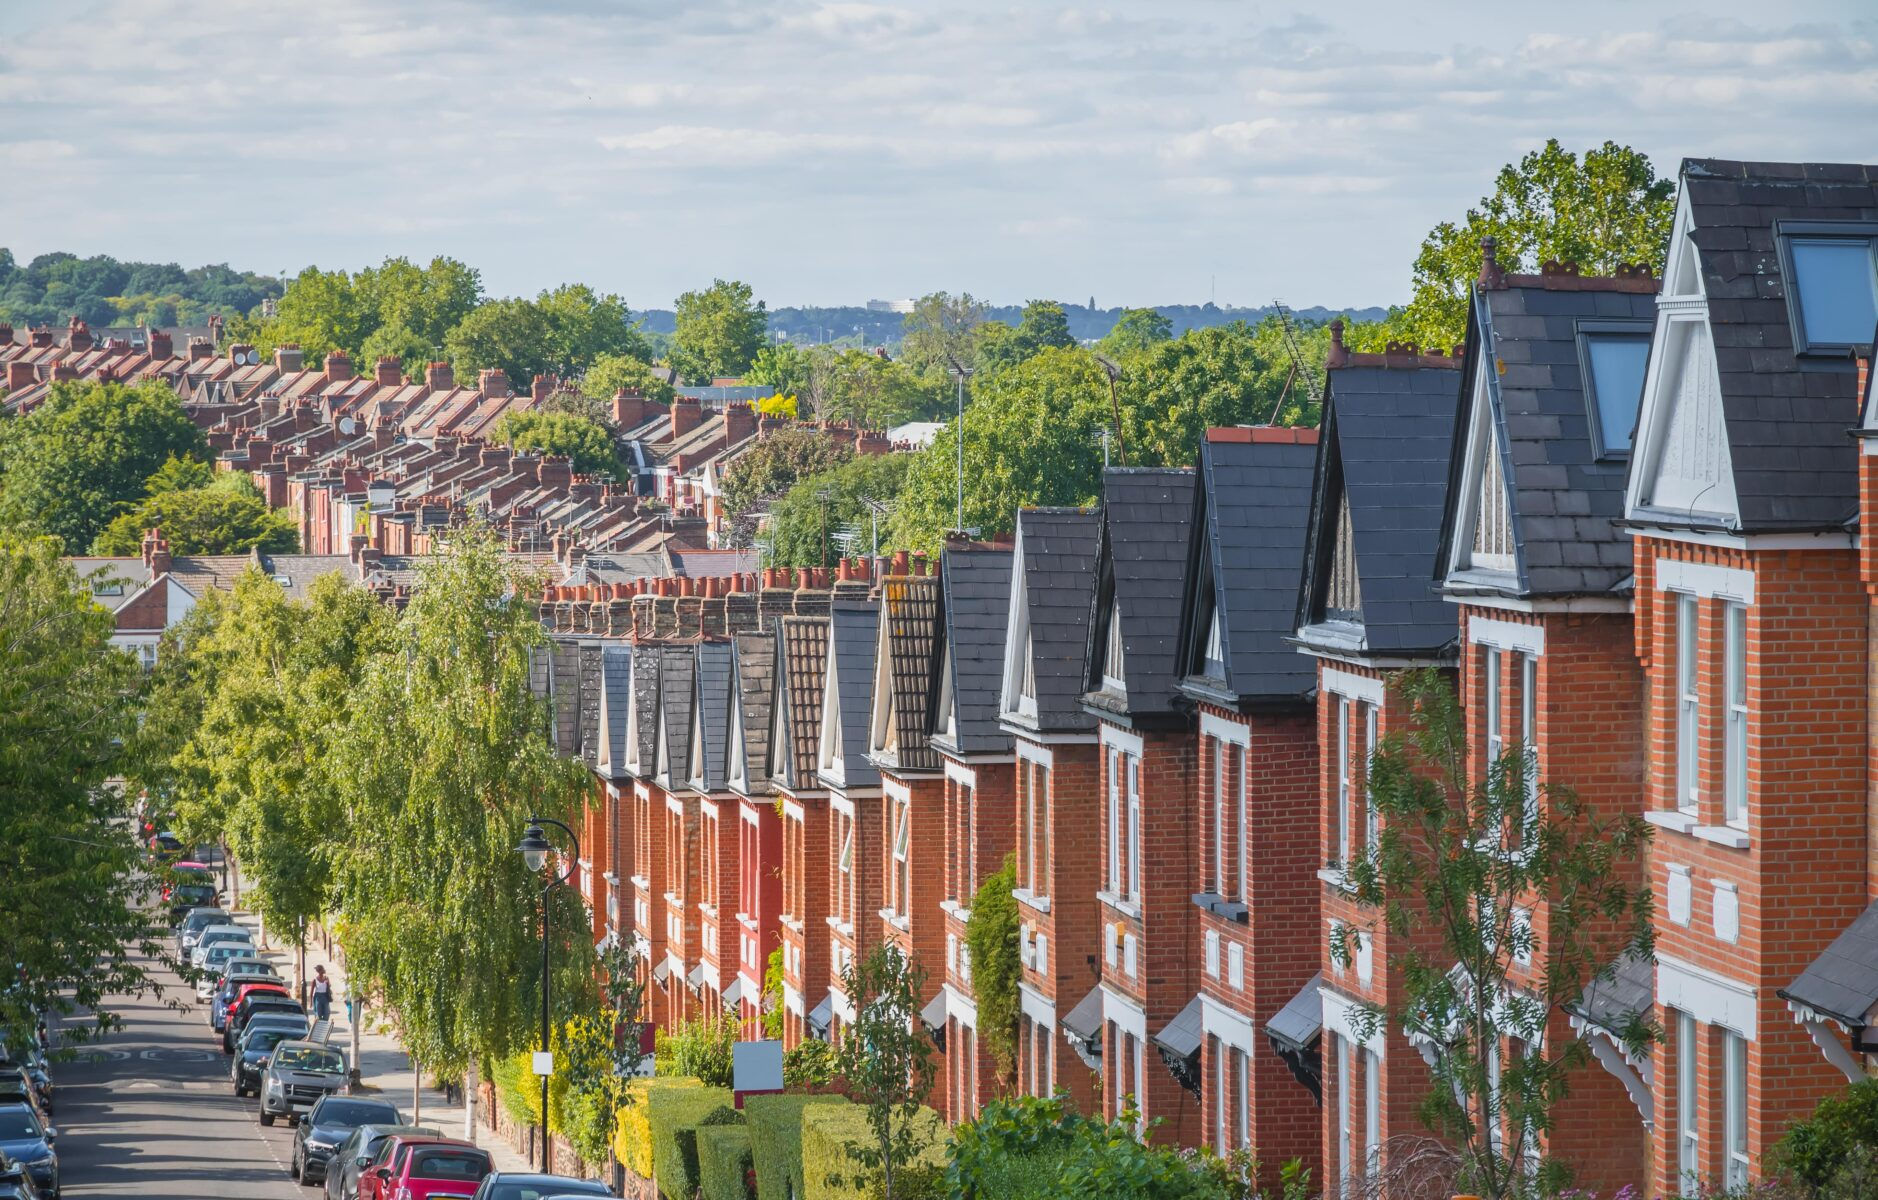 How Has Covid-19 Impacted the Buy-to-Let Market